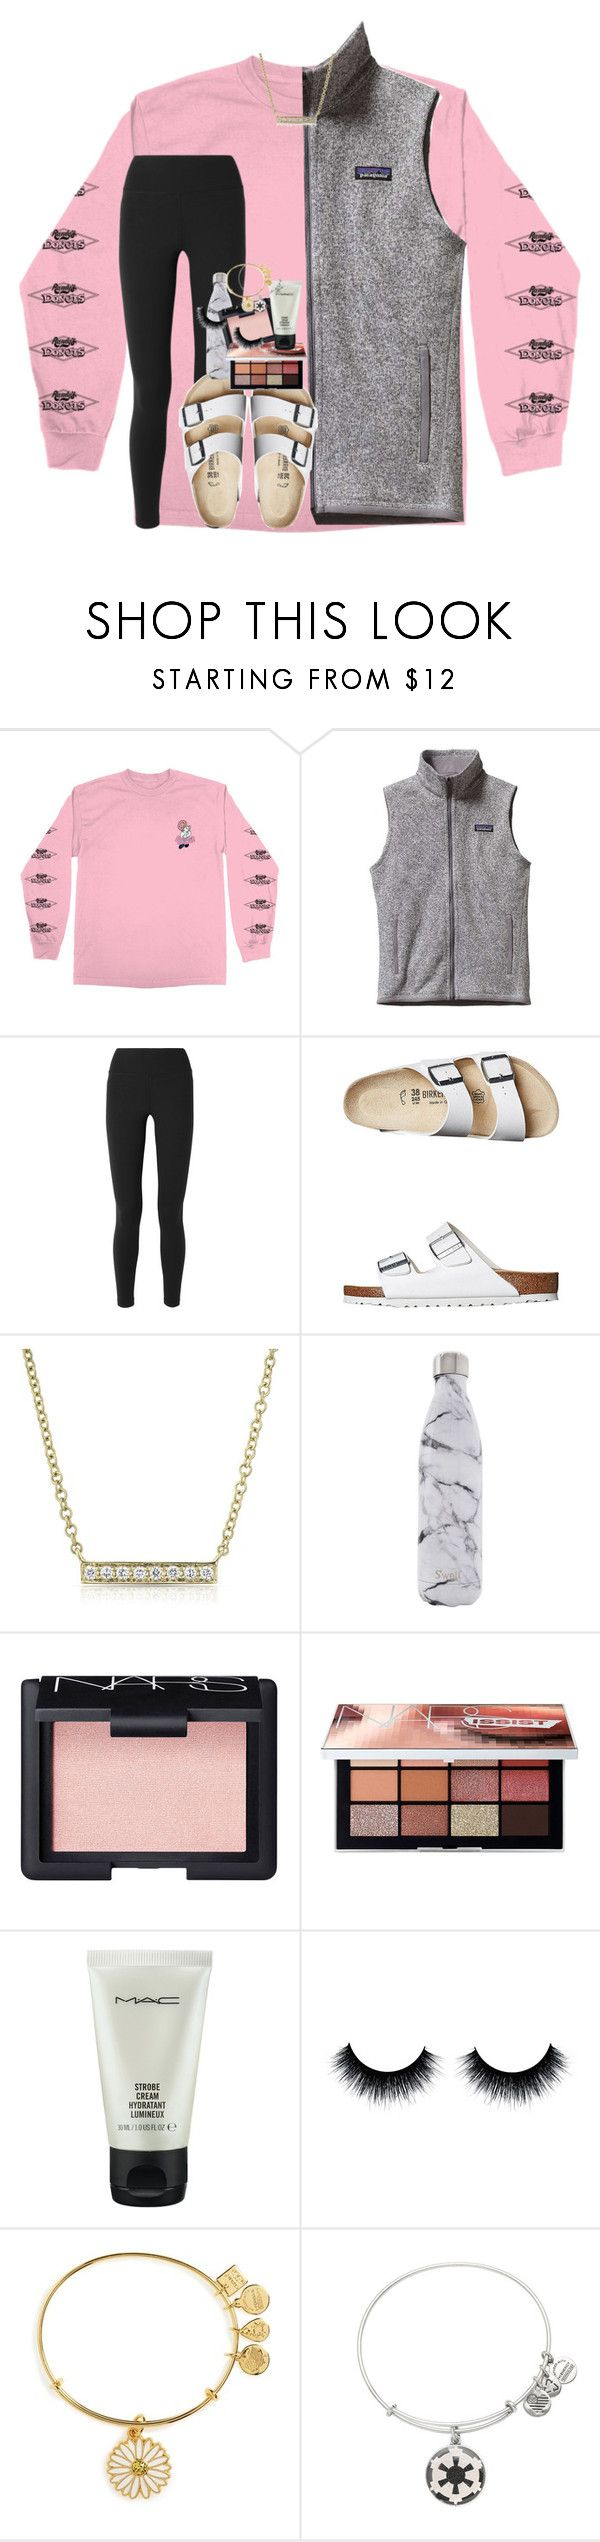 """2 hour delay at school:)"" by rxindrops-on-roses ❤ liked on Polyvore featuring Patagonia, NIKE, Birkenstock, Anne Sisteron, S'well, NARS Cosmetics, MAC Cosmetics and Alex and Ani"